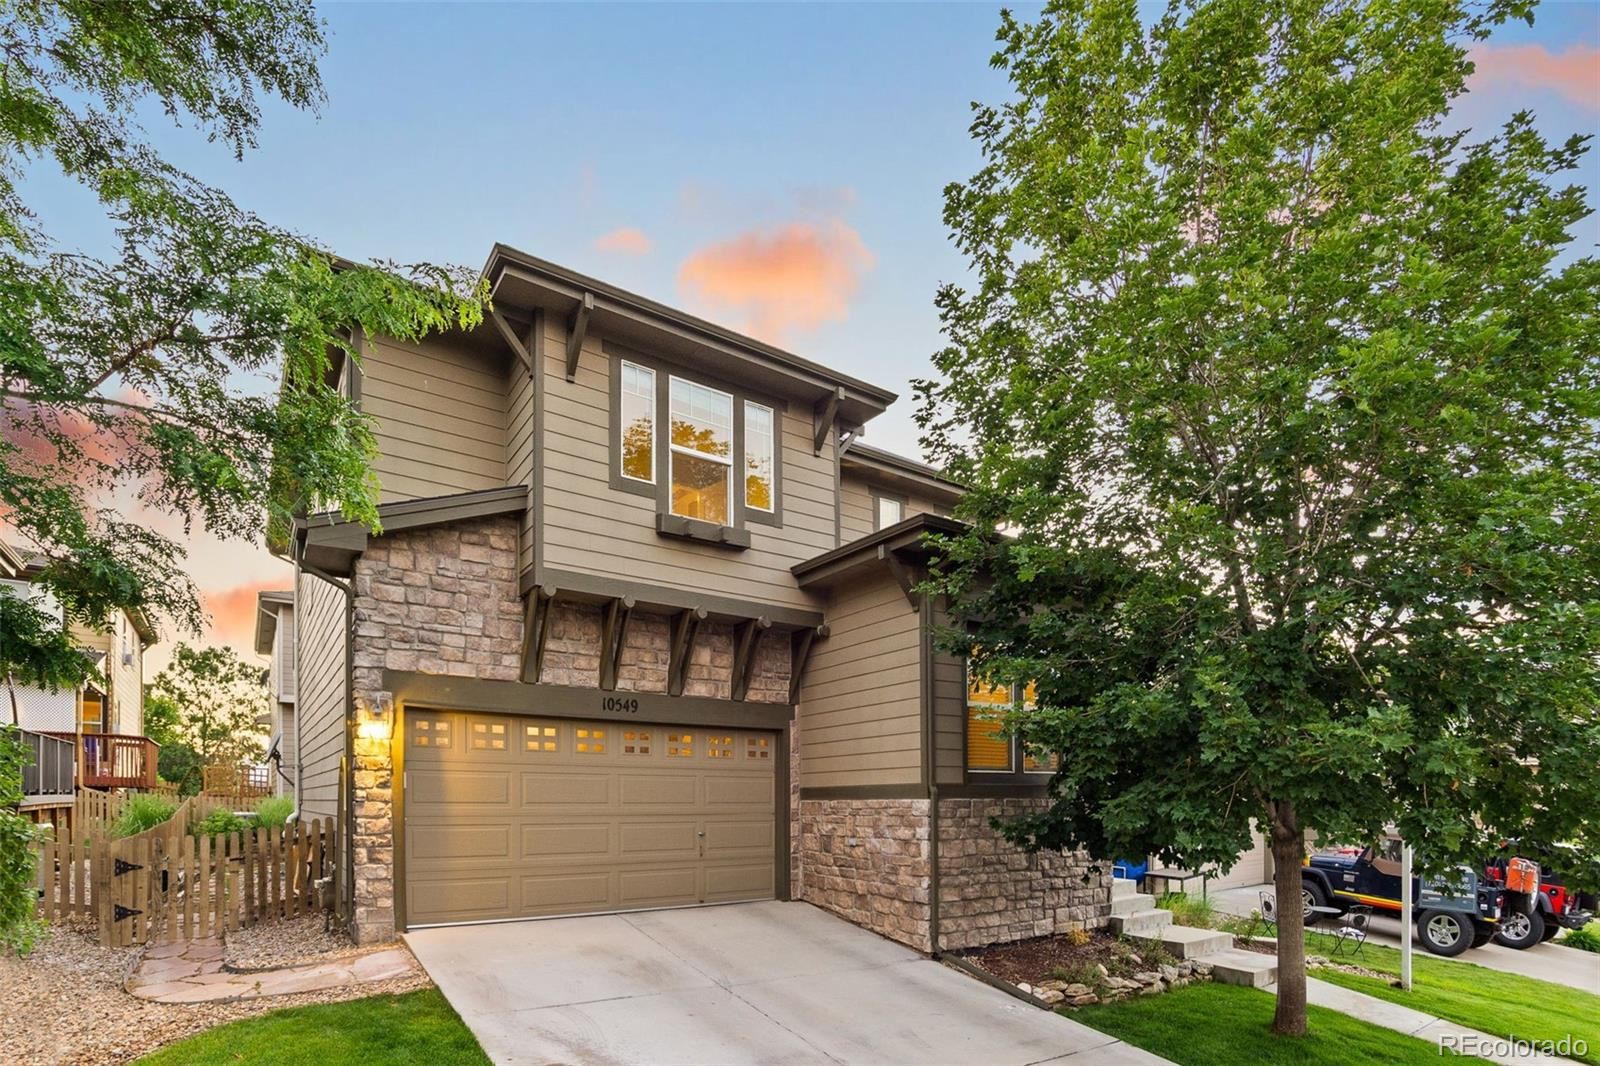 10549 Atwood Circle, Highlands Ranch, CO 80130 - #: 6957809